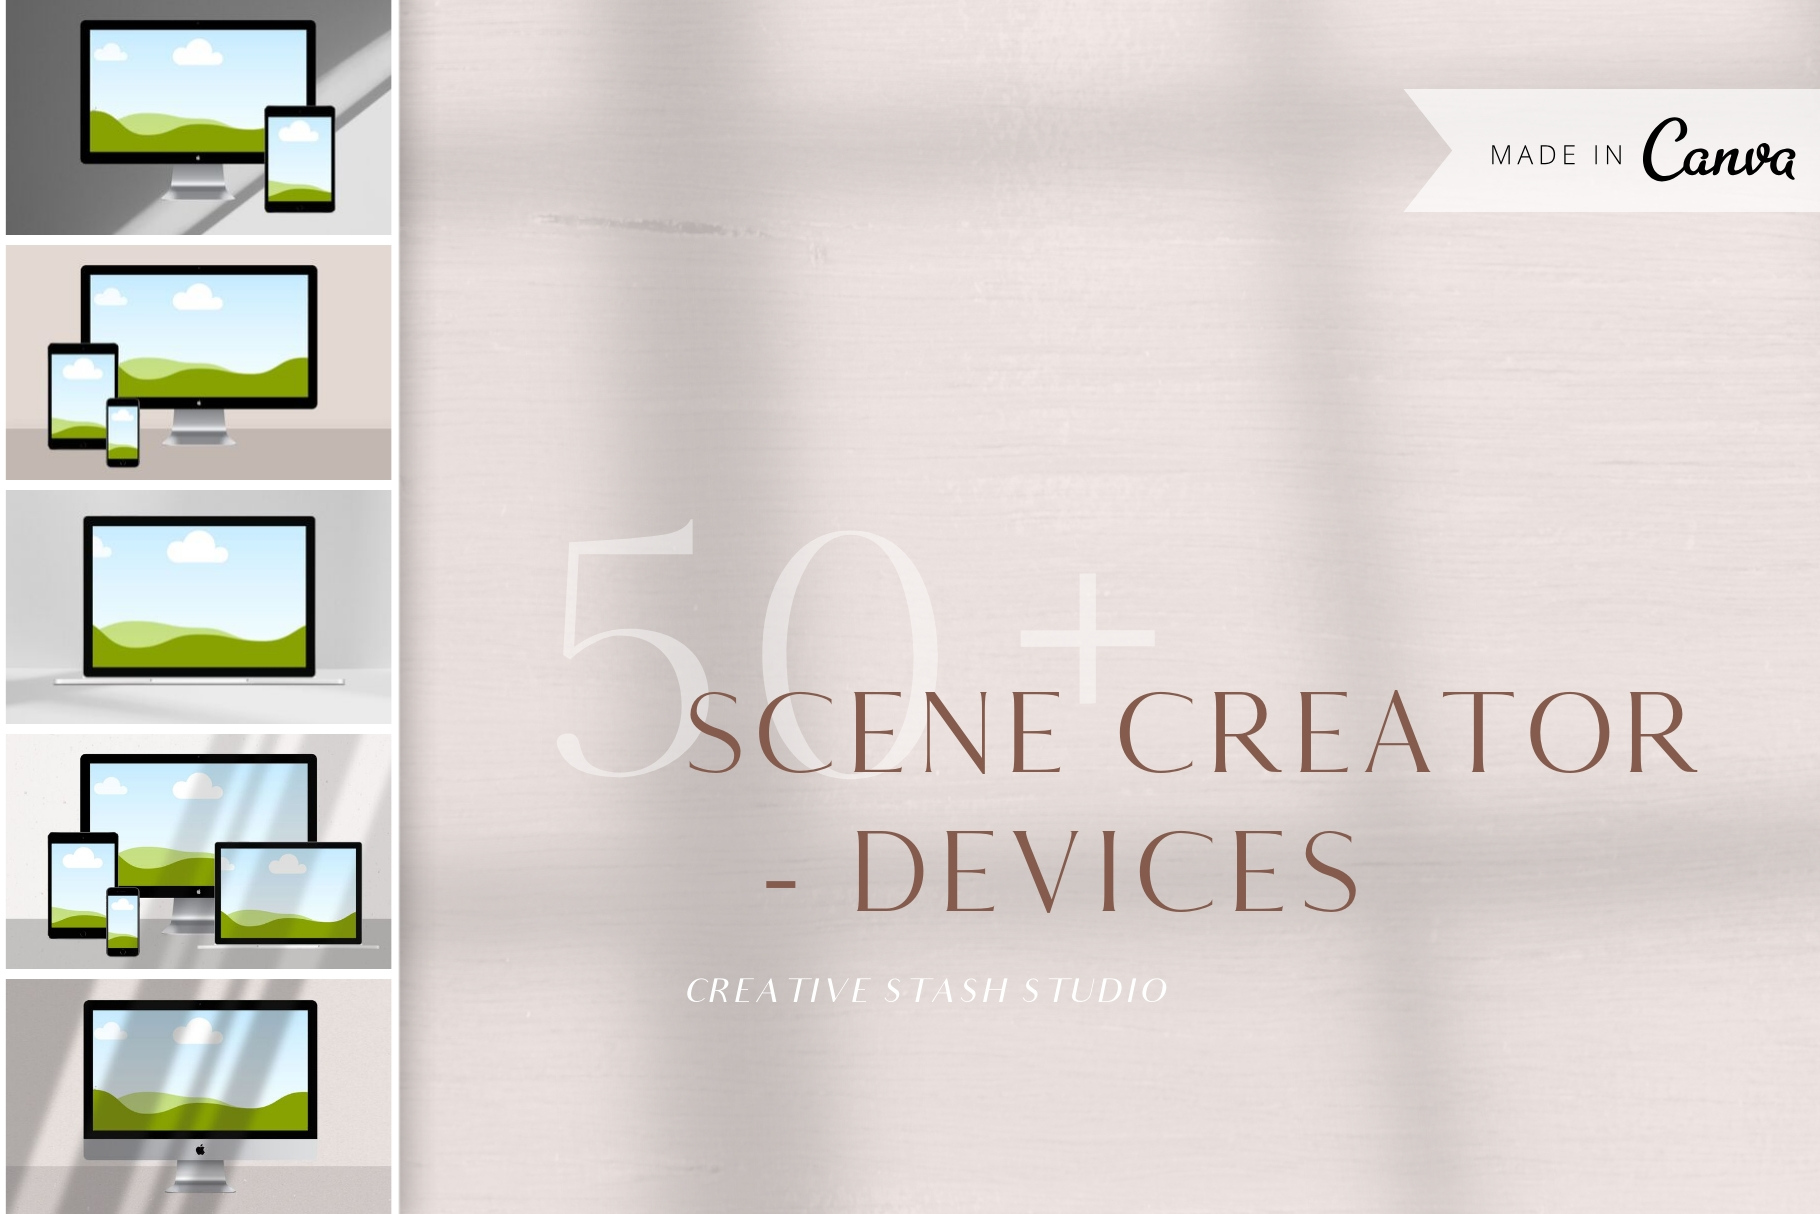 Canva Devices Mockup Scene Creator example image 2